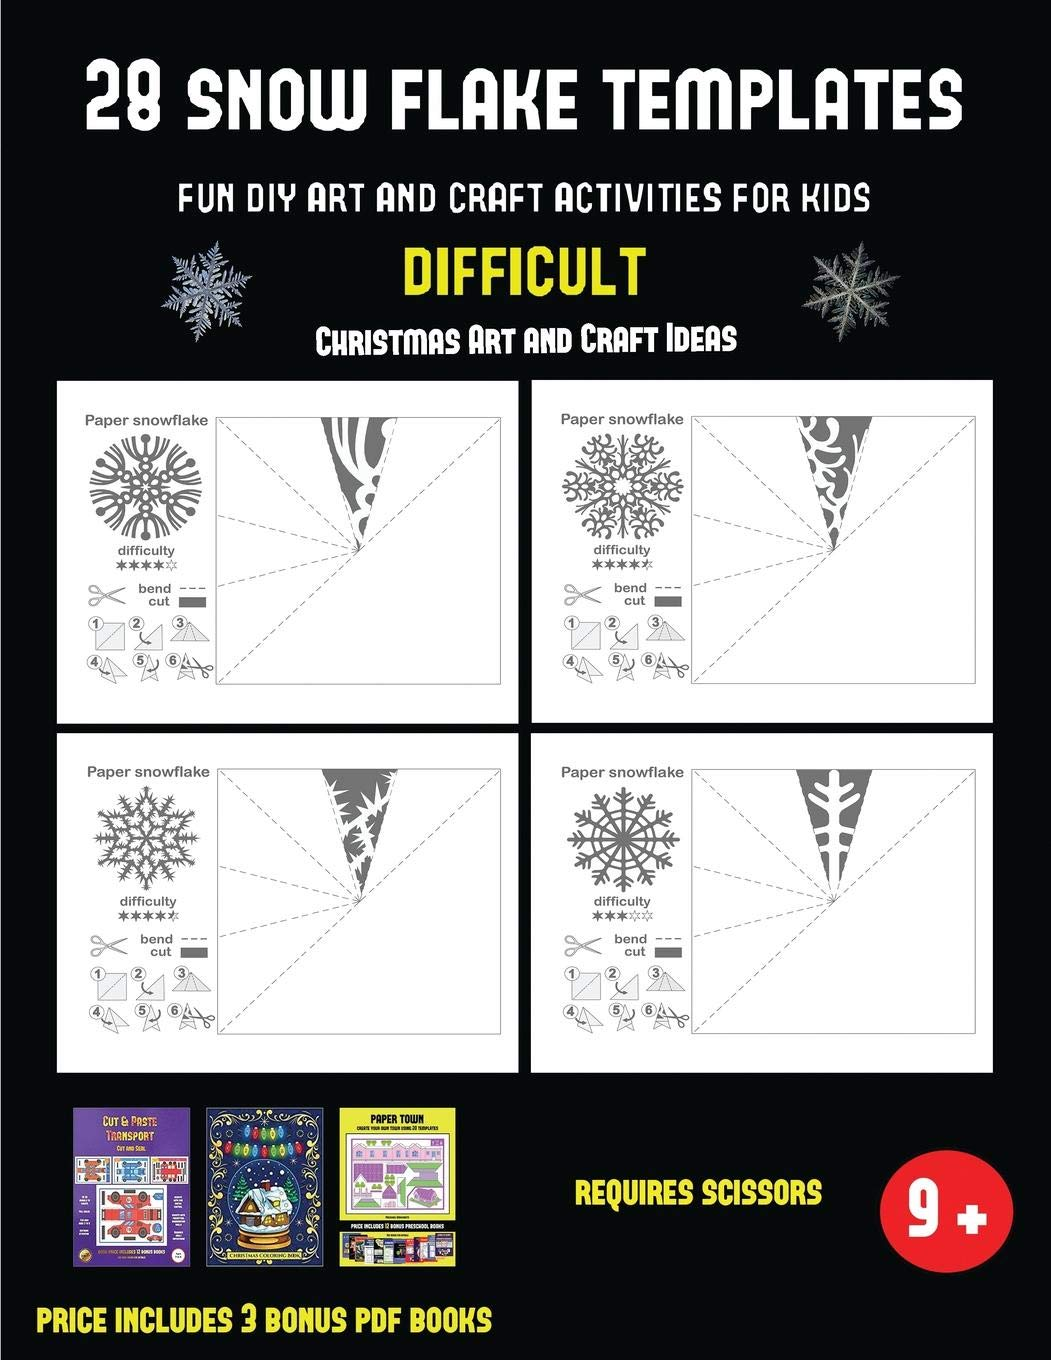 Buy Christmas Art And Craft Ideas 28 Snowflake Templates Fun Diy Art And Craft Activities For Kids Difficult Arts And Crafts For Kids Book Online At Low Prices In India